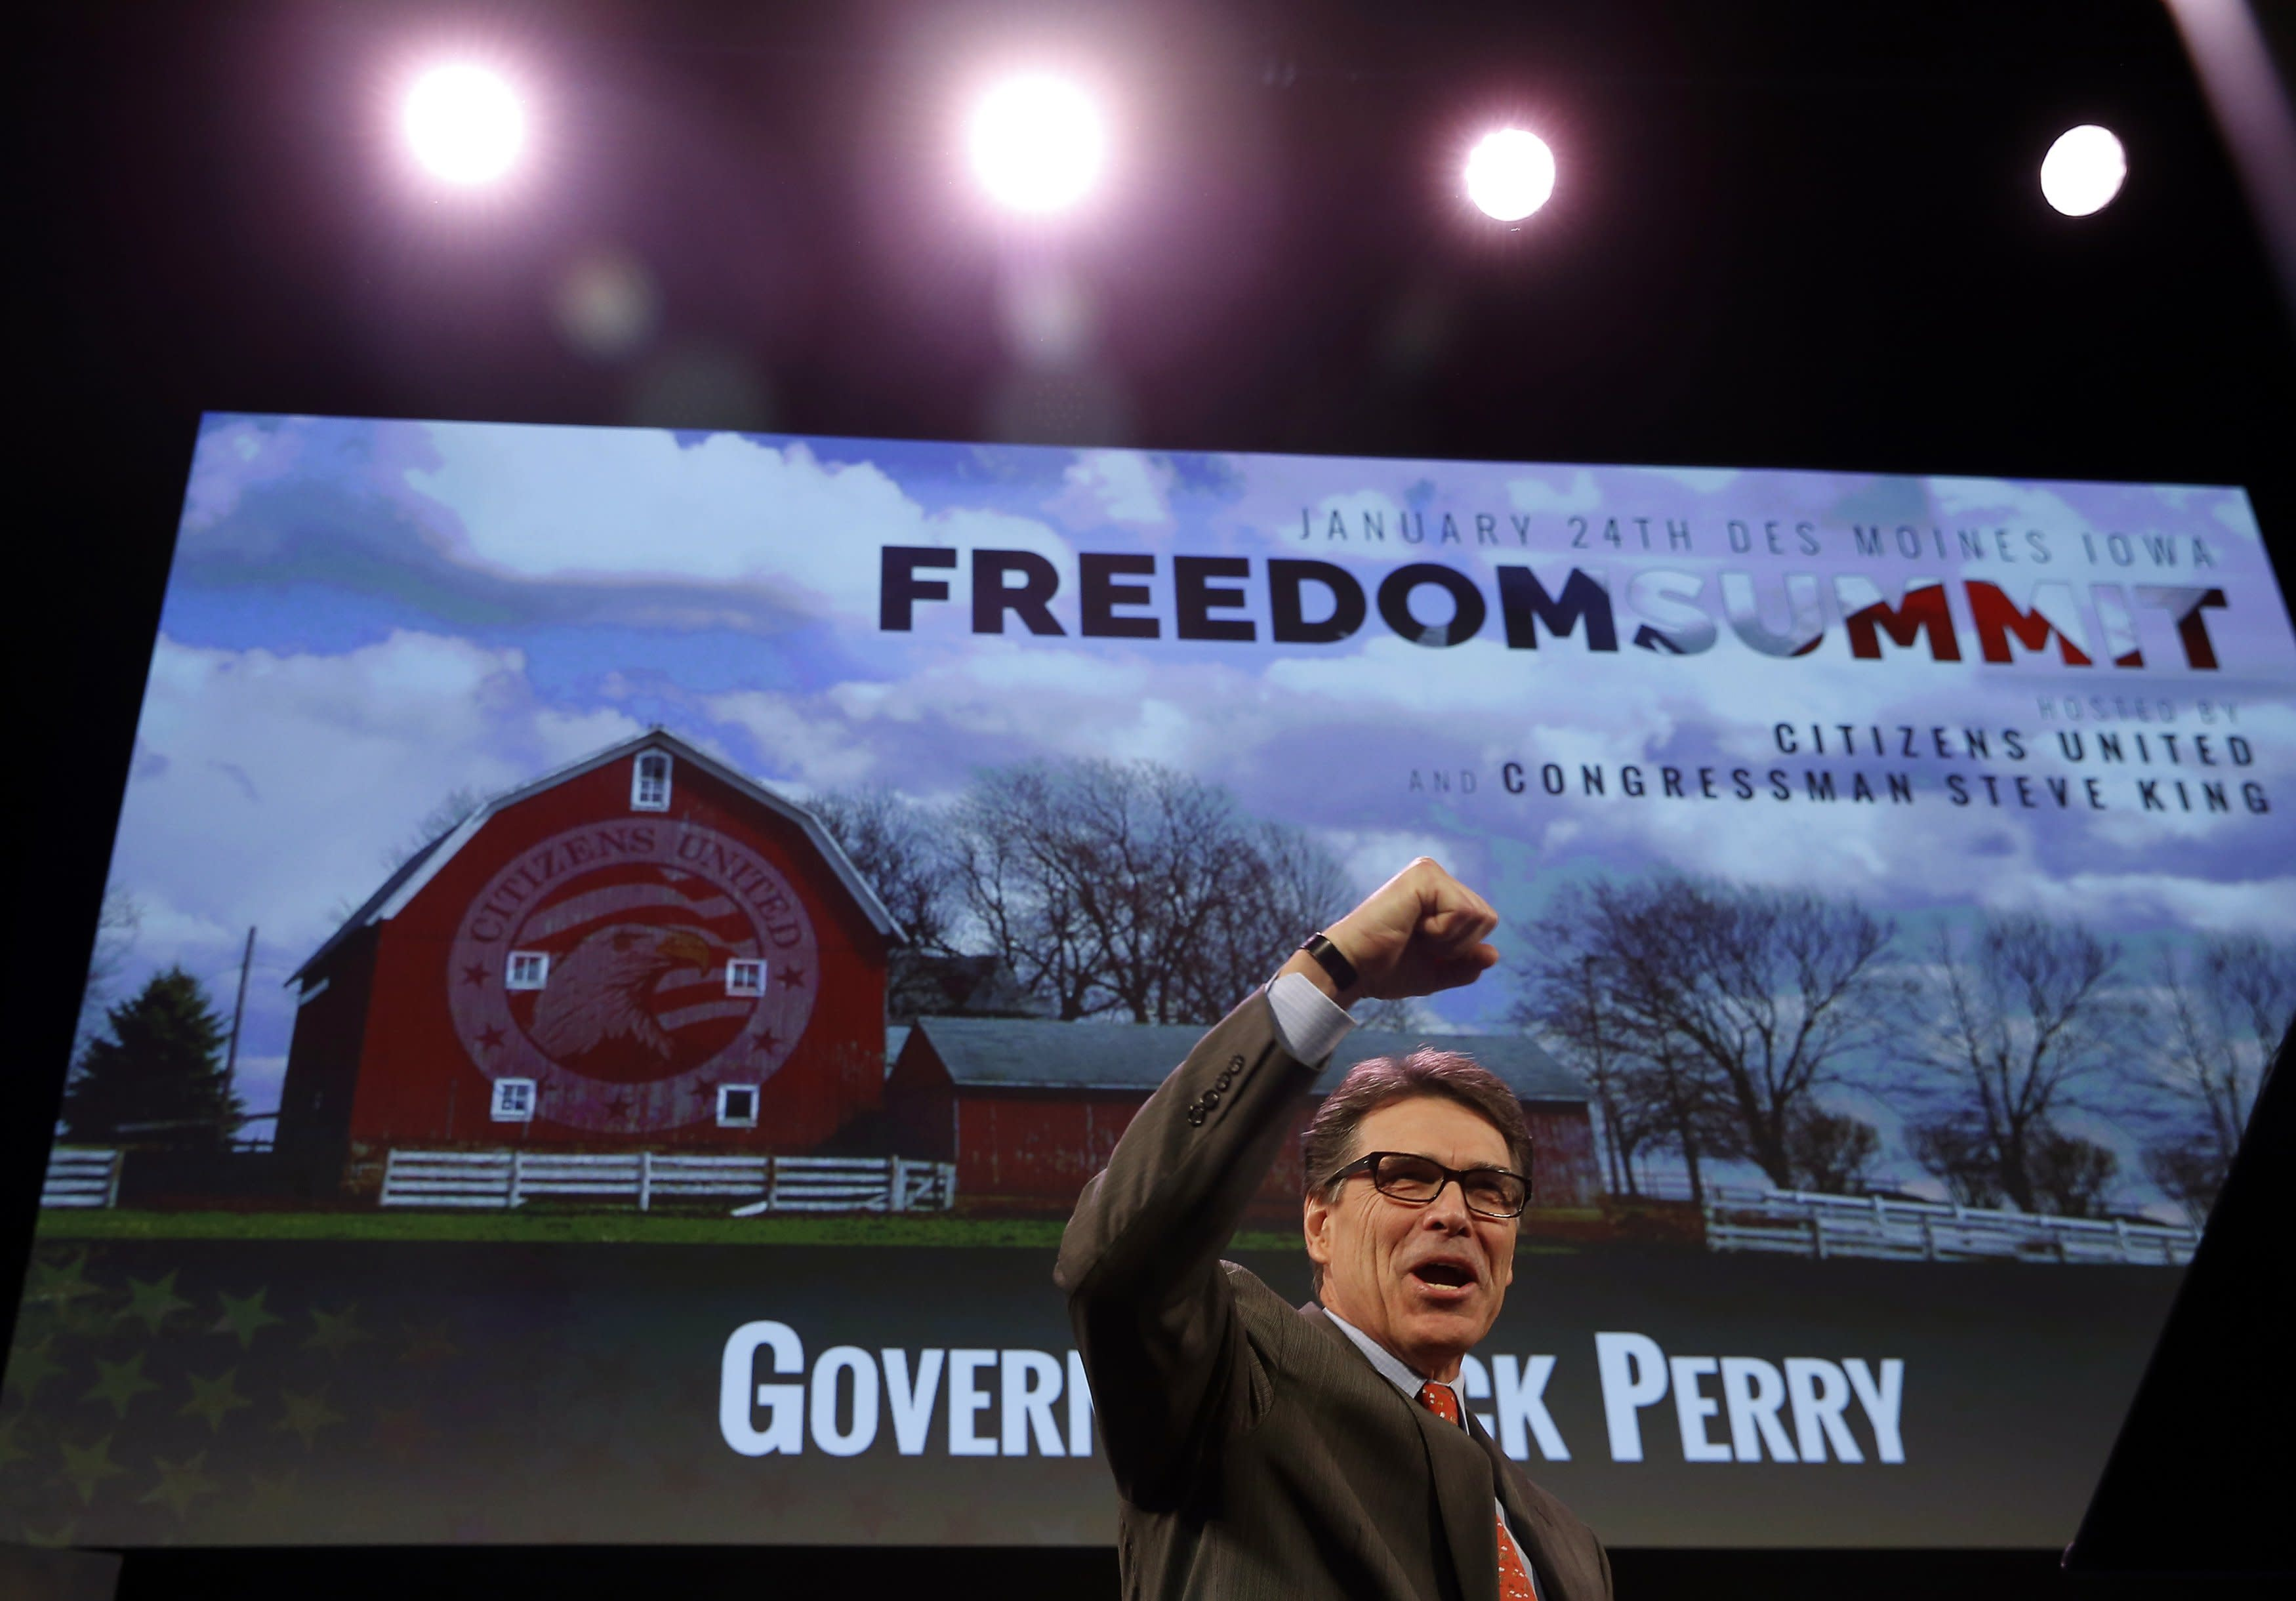 Former Governor of Texas Rick Perry arrives to speak at the Freedom Summit in Des Moines, Iowa, January 24, 2015. REUTERS/Jim Young (UNITED STATES - Tags: POLITICS)